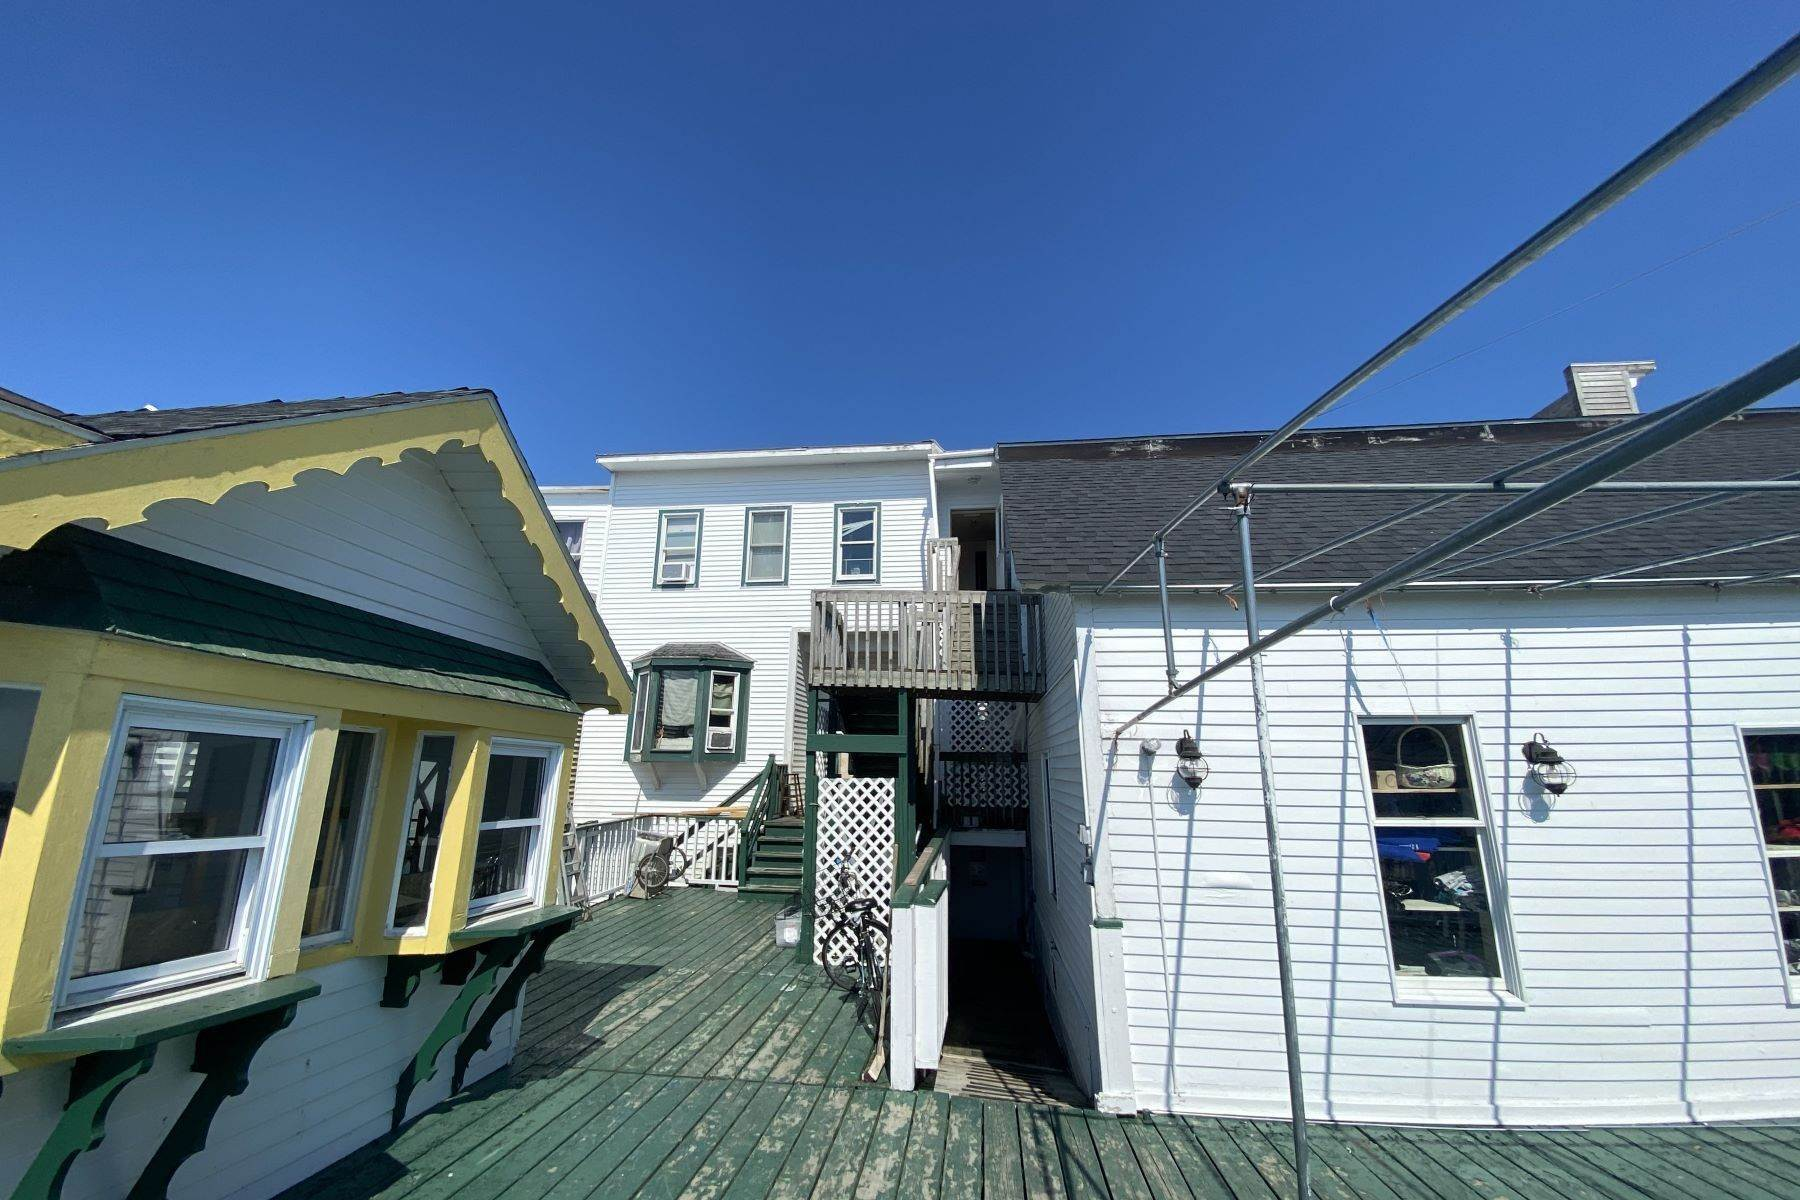 9. Commercial for Sale at Waterfront commercial building on Mackinac Island with retail space 7293 & 7279 Main Street Mackinac Island, Michigan 49757 United States